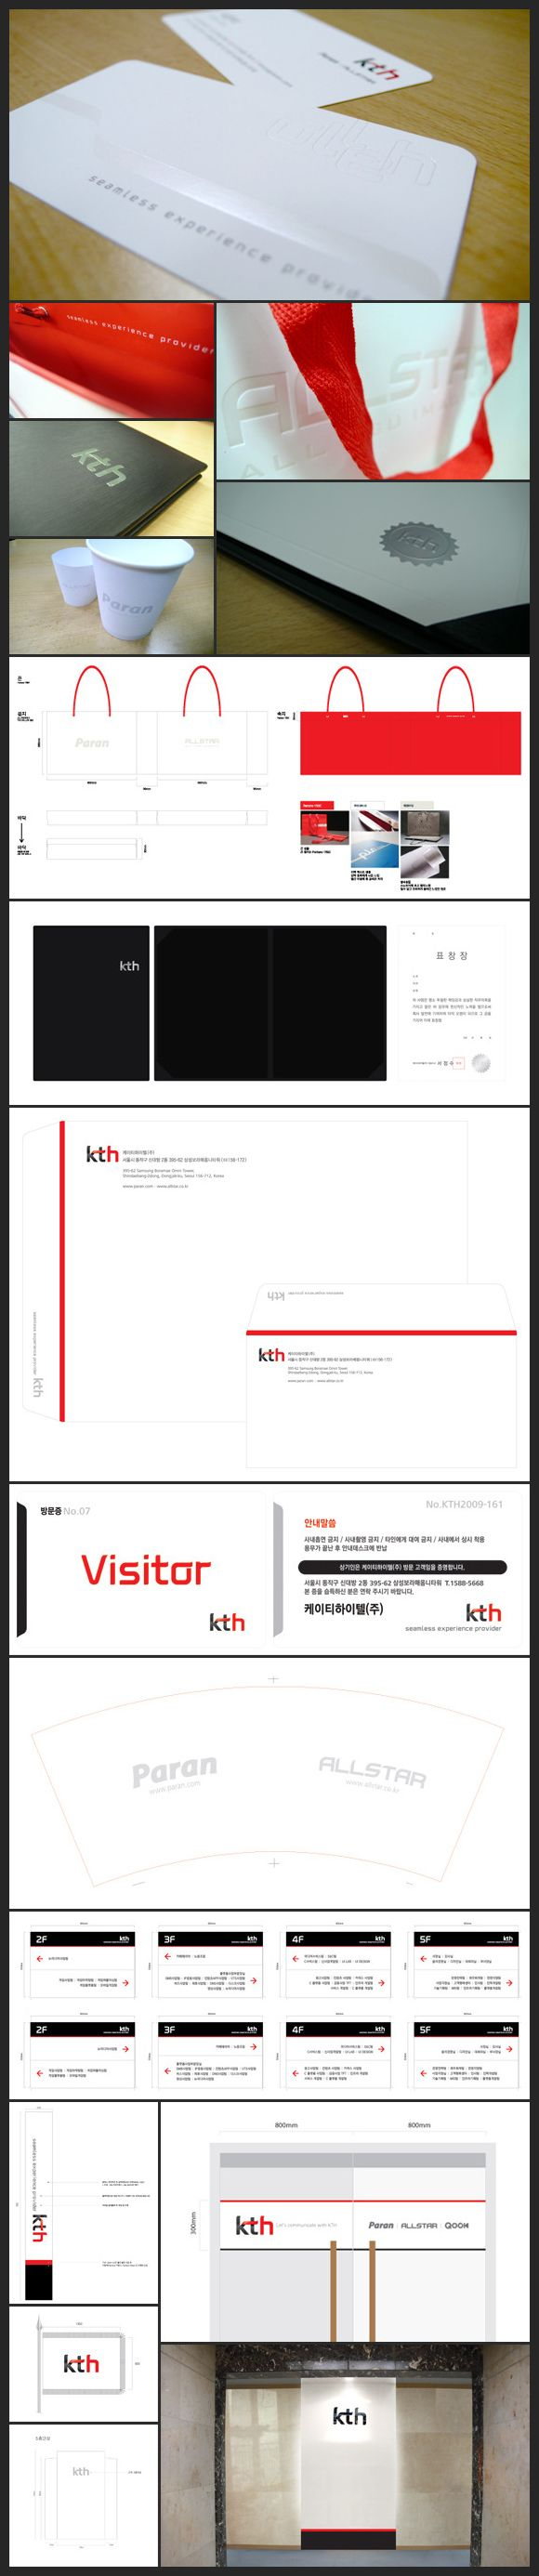 KTH Brand Application Design